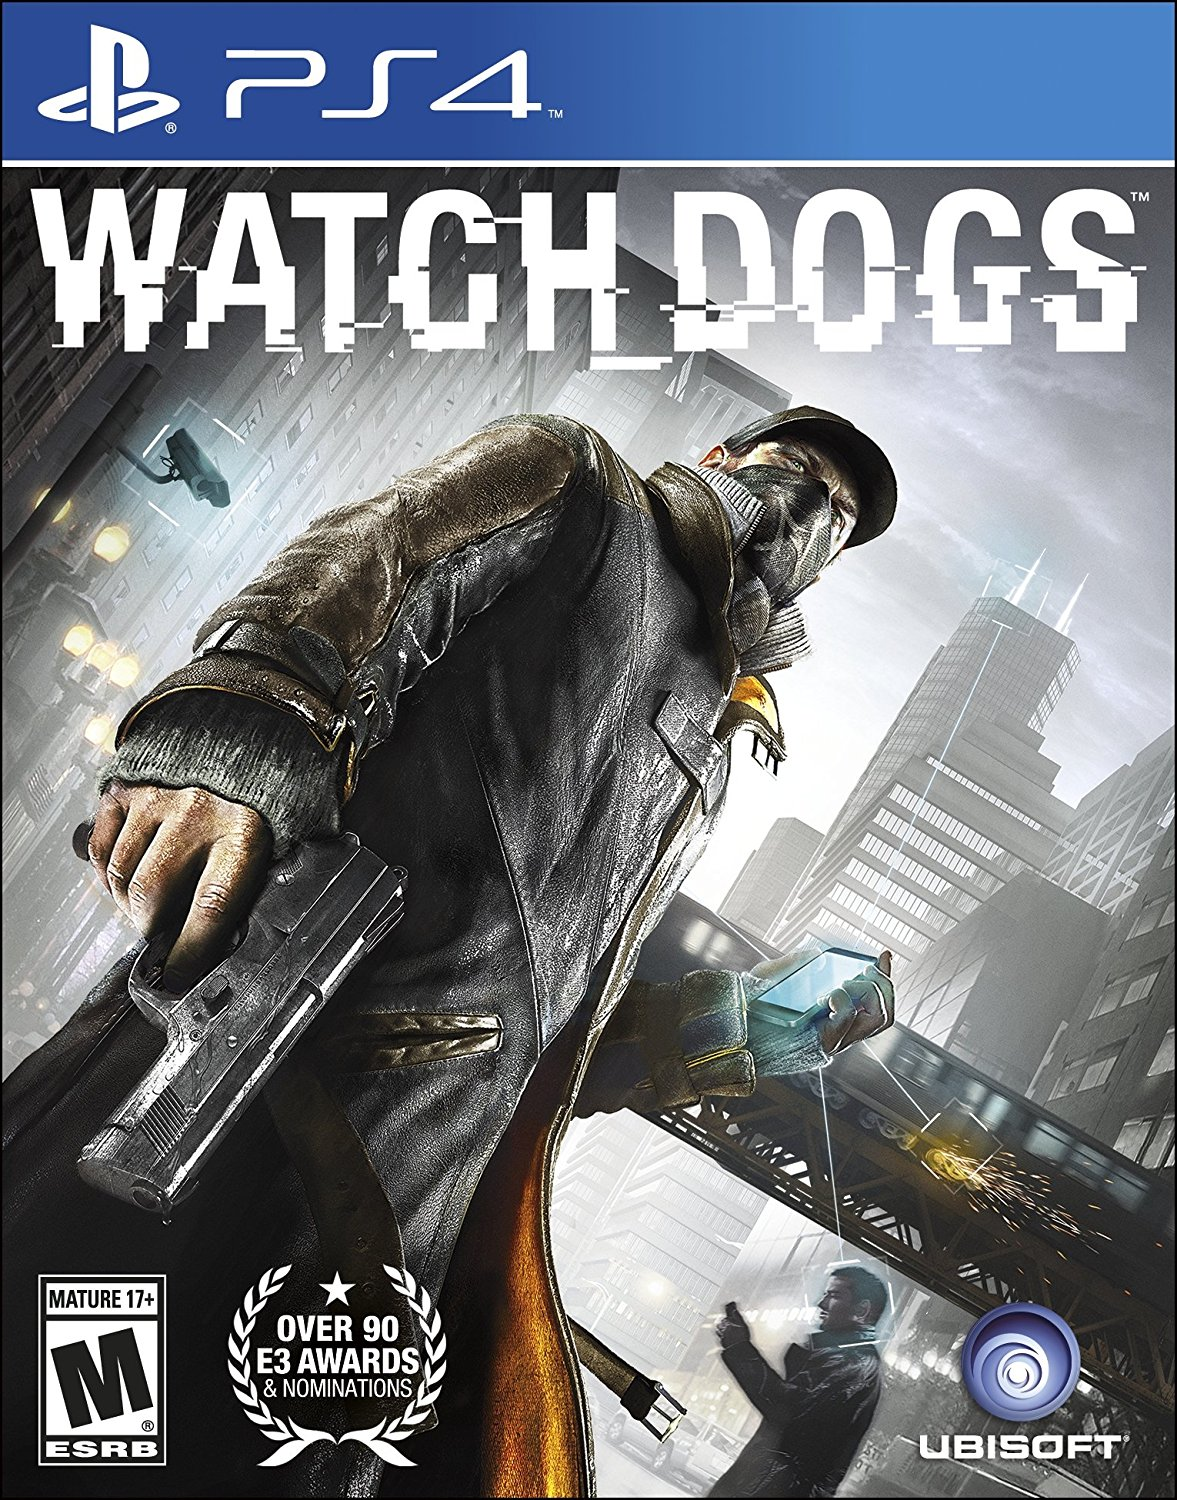 Sony-playstation-4-dvd-Watch-Dogs-PS4